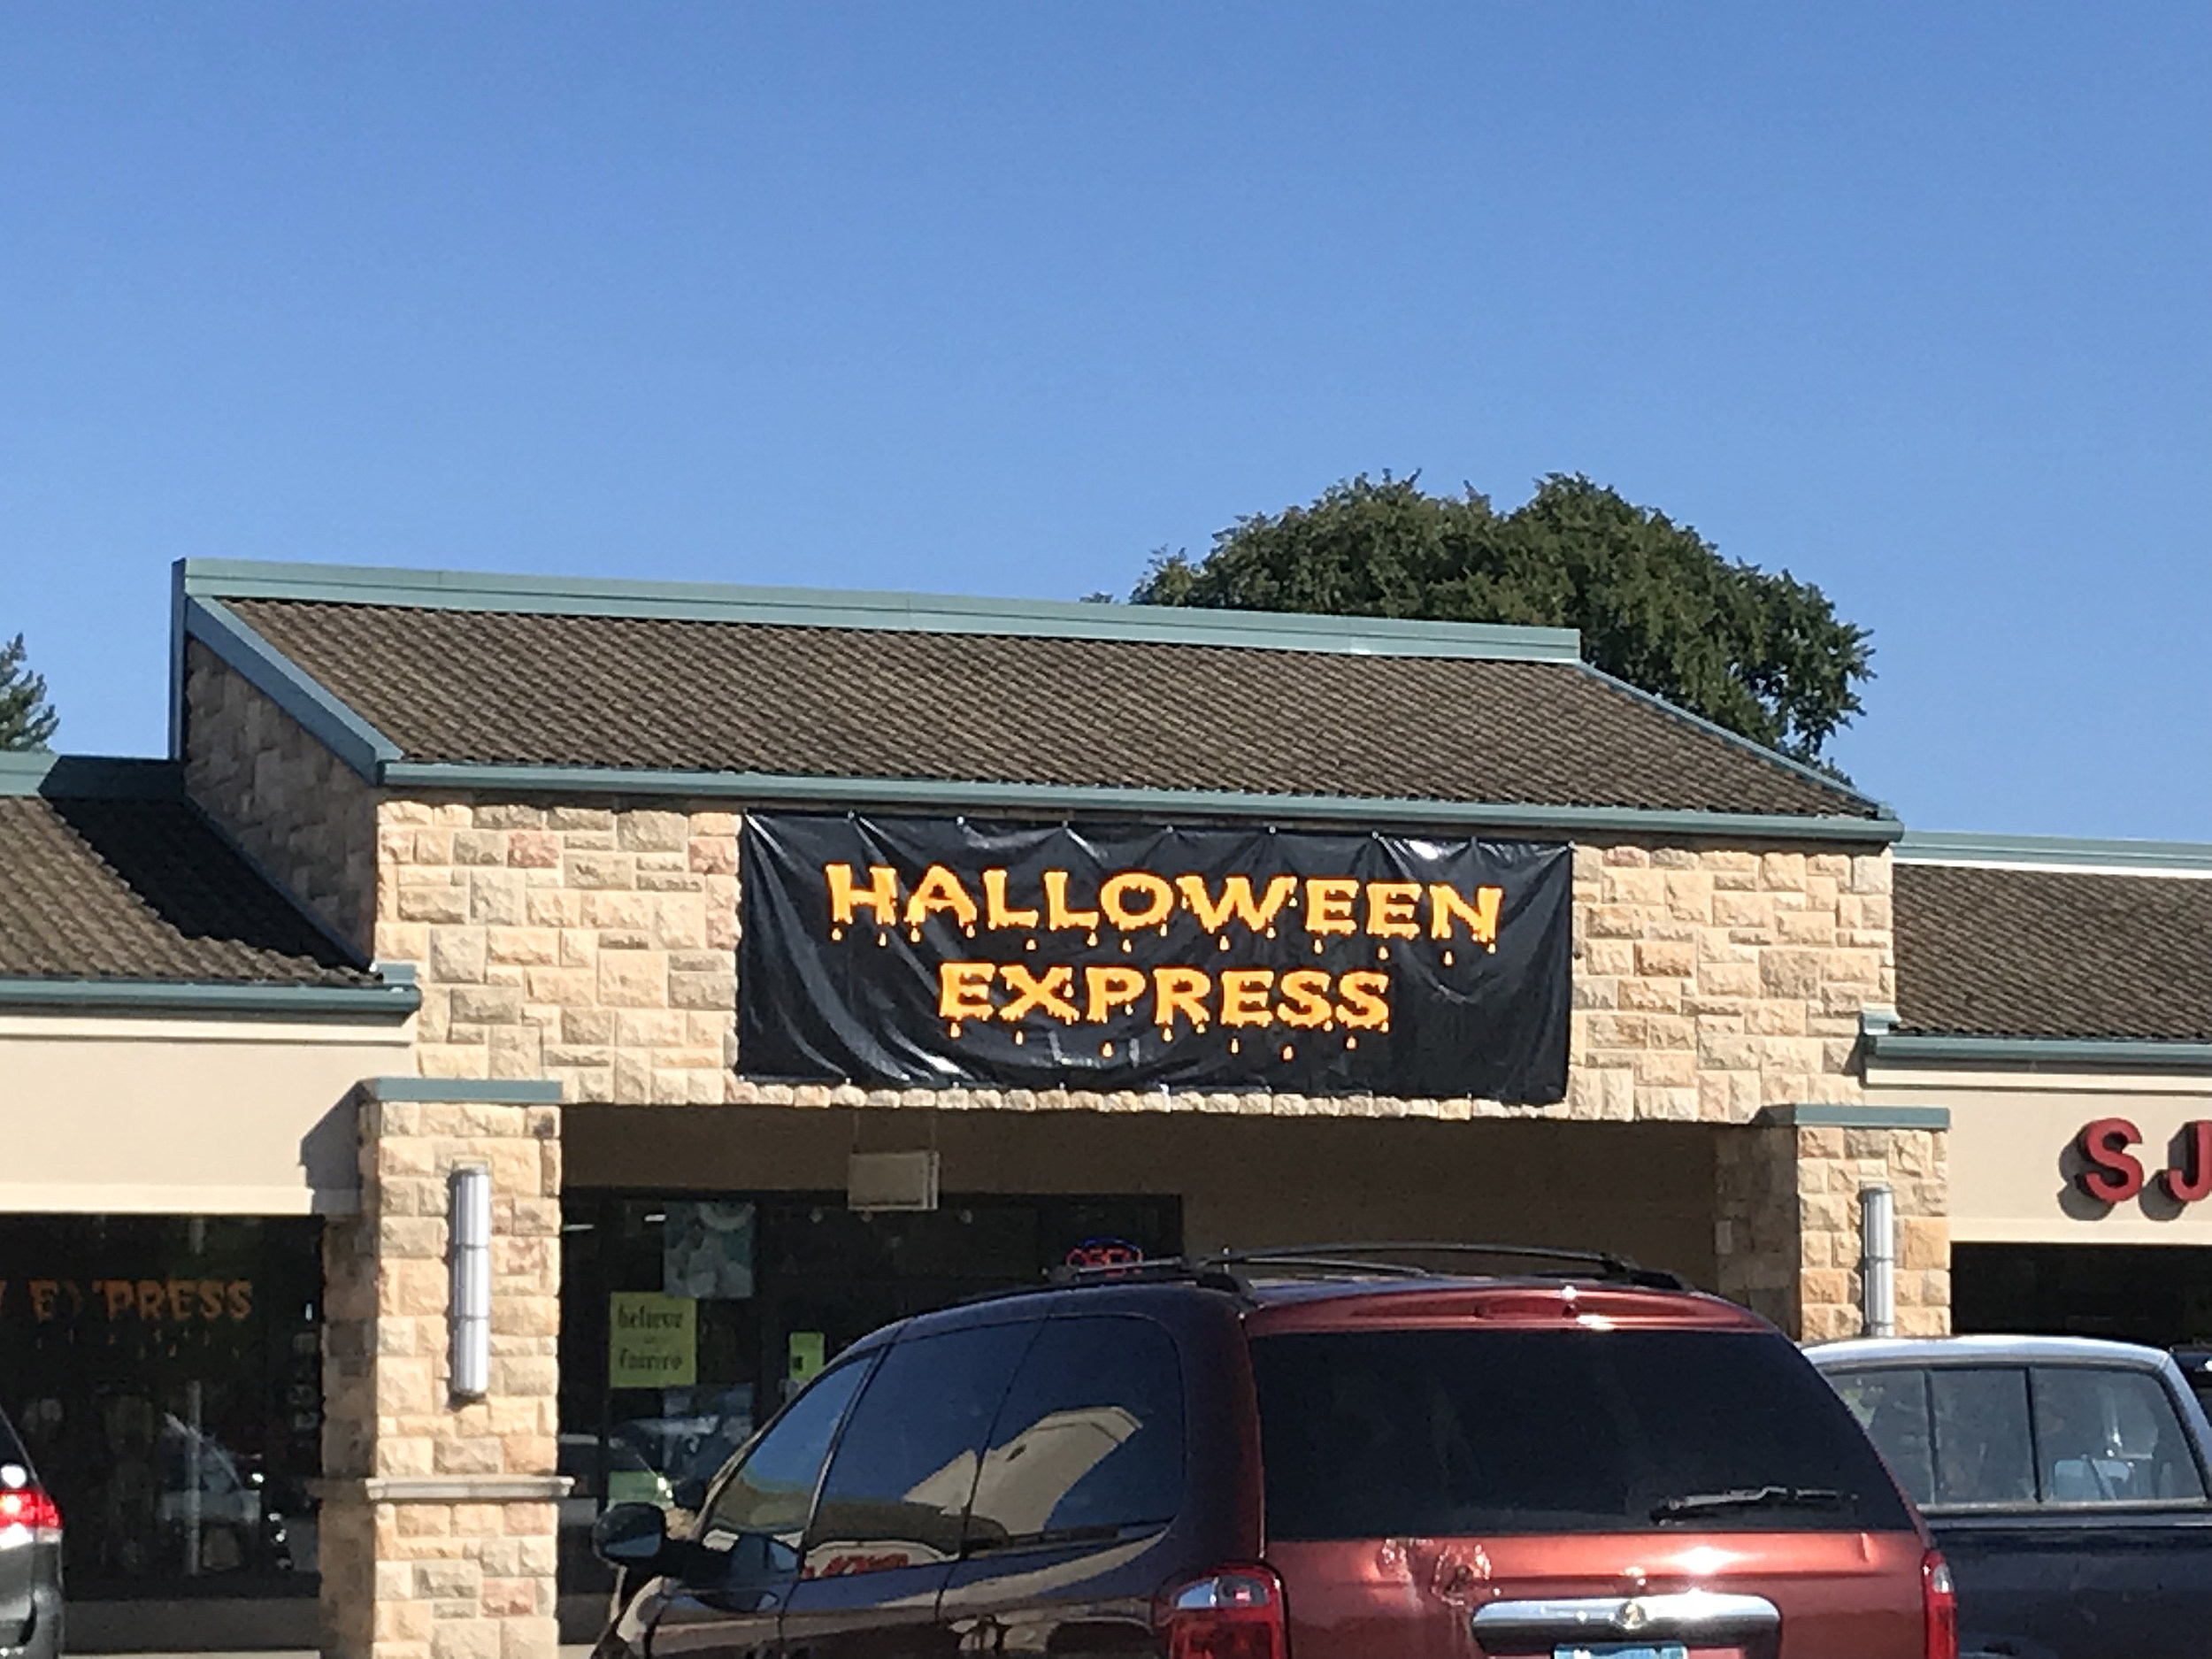 did anyone else notice rochester's 'halloween express' moved?